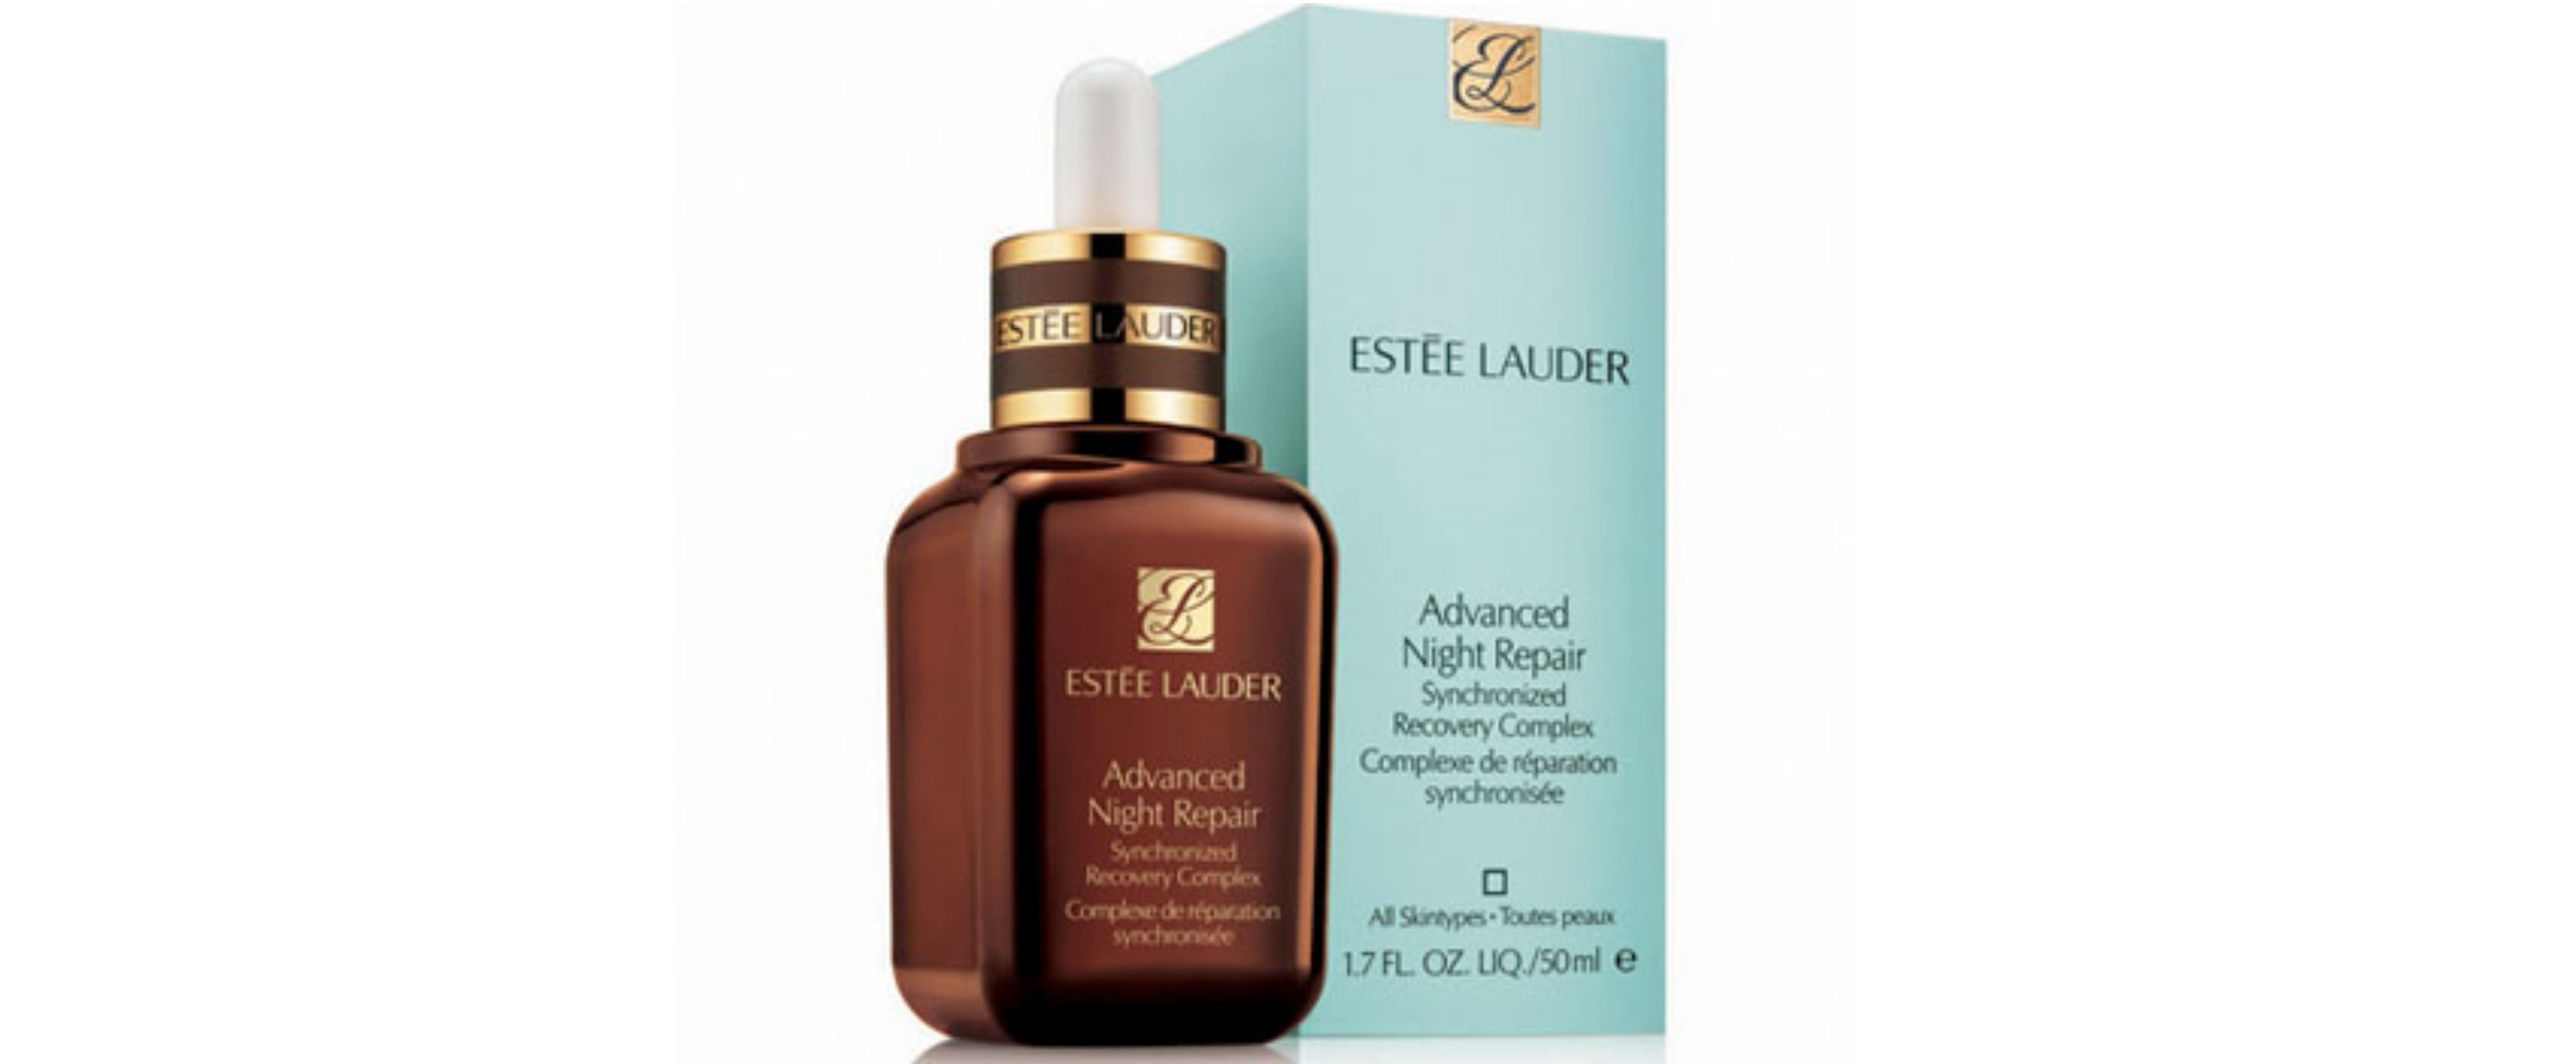 Estee Lauder Advanced Night Repair Synch Recovery Complex II